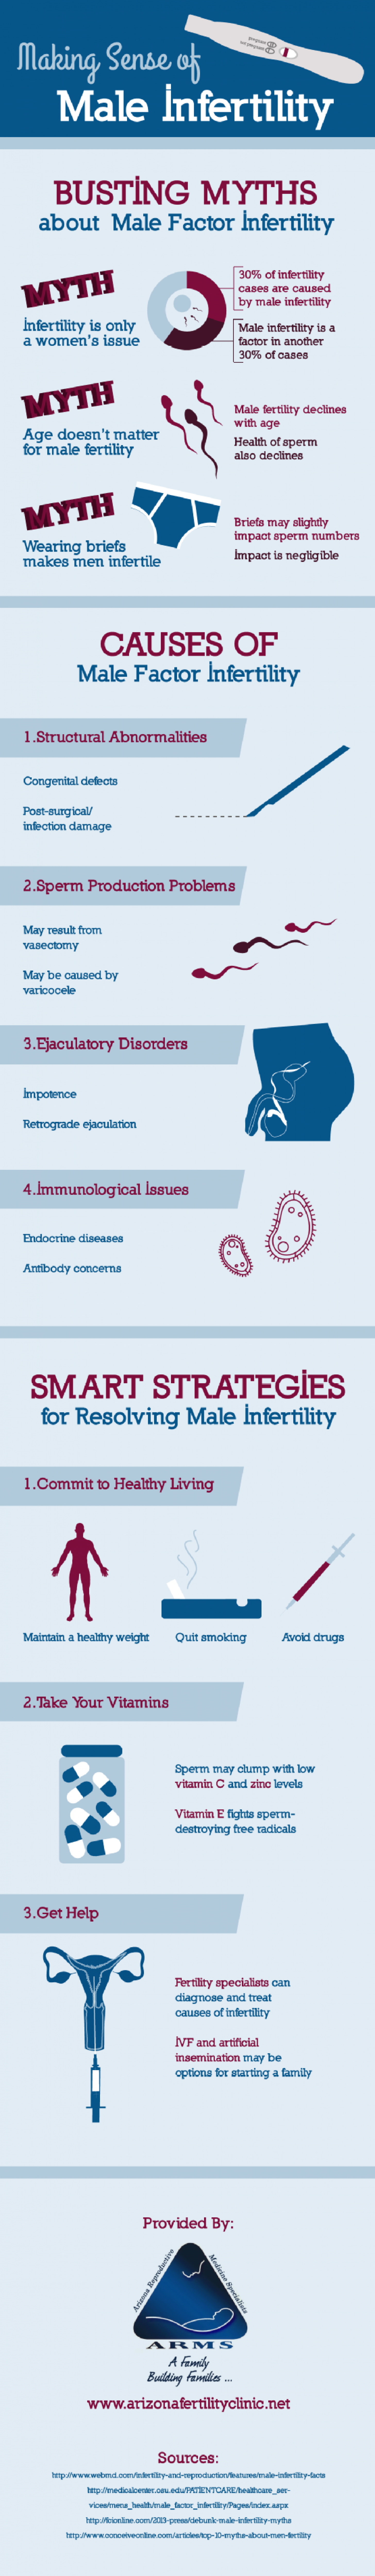 Making Sense of Male Infertility Infographic